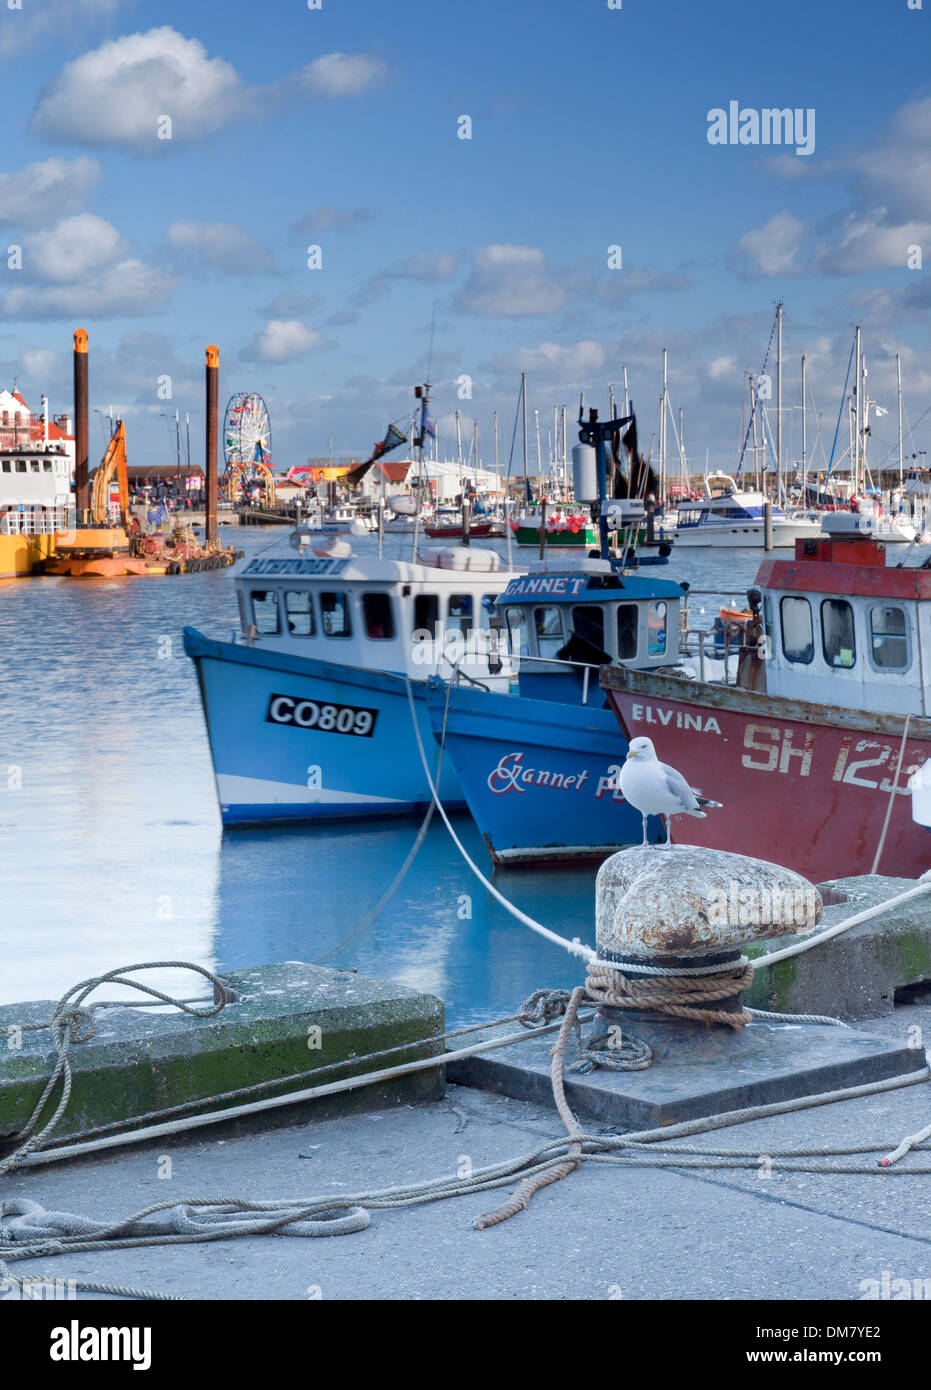 Fishing boats moored in the harbour at Scarborough on the Yorkshire coast. - Stock Image